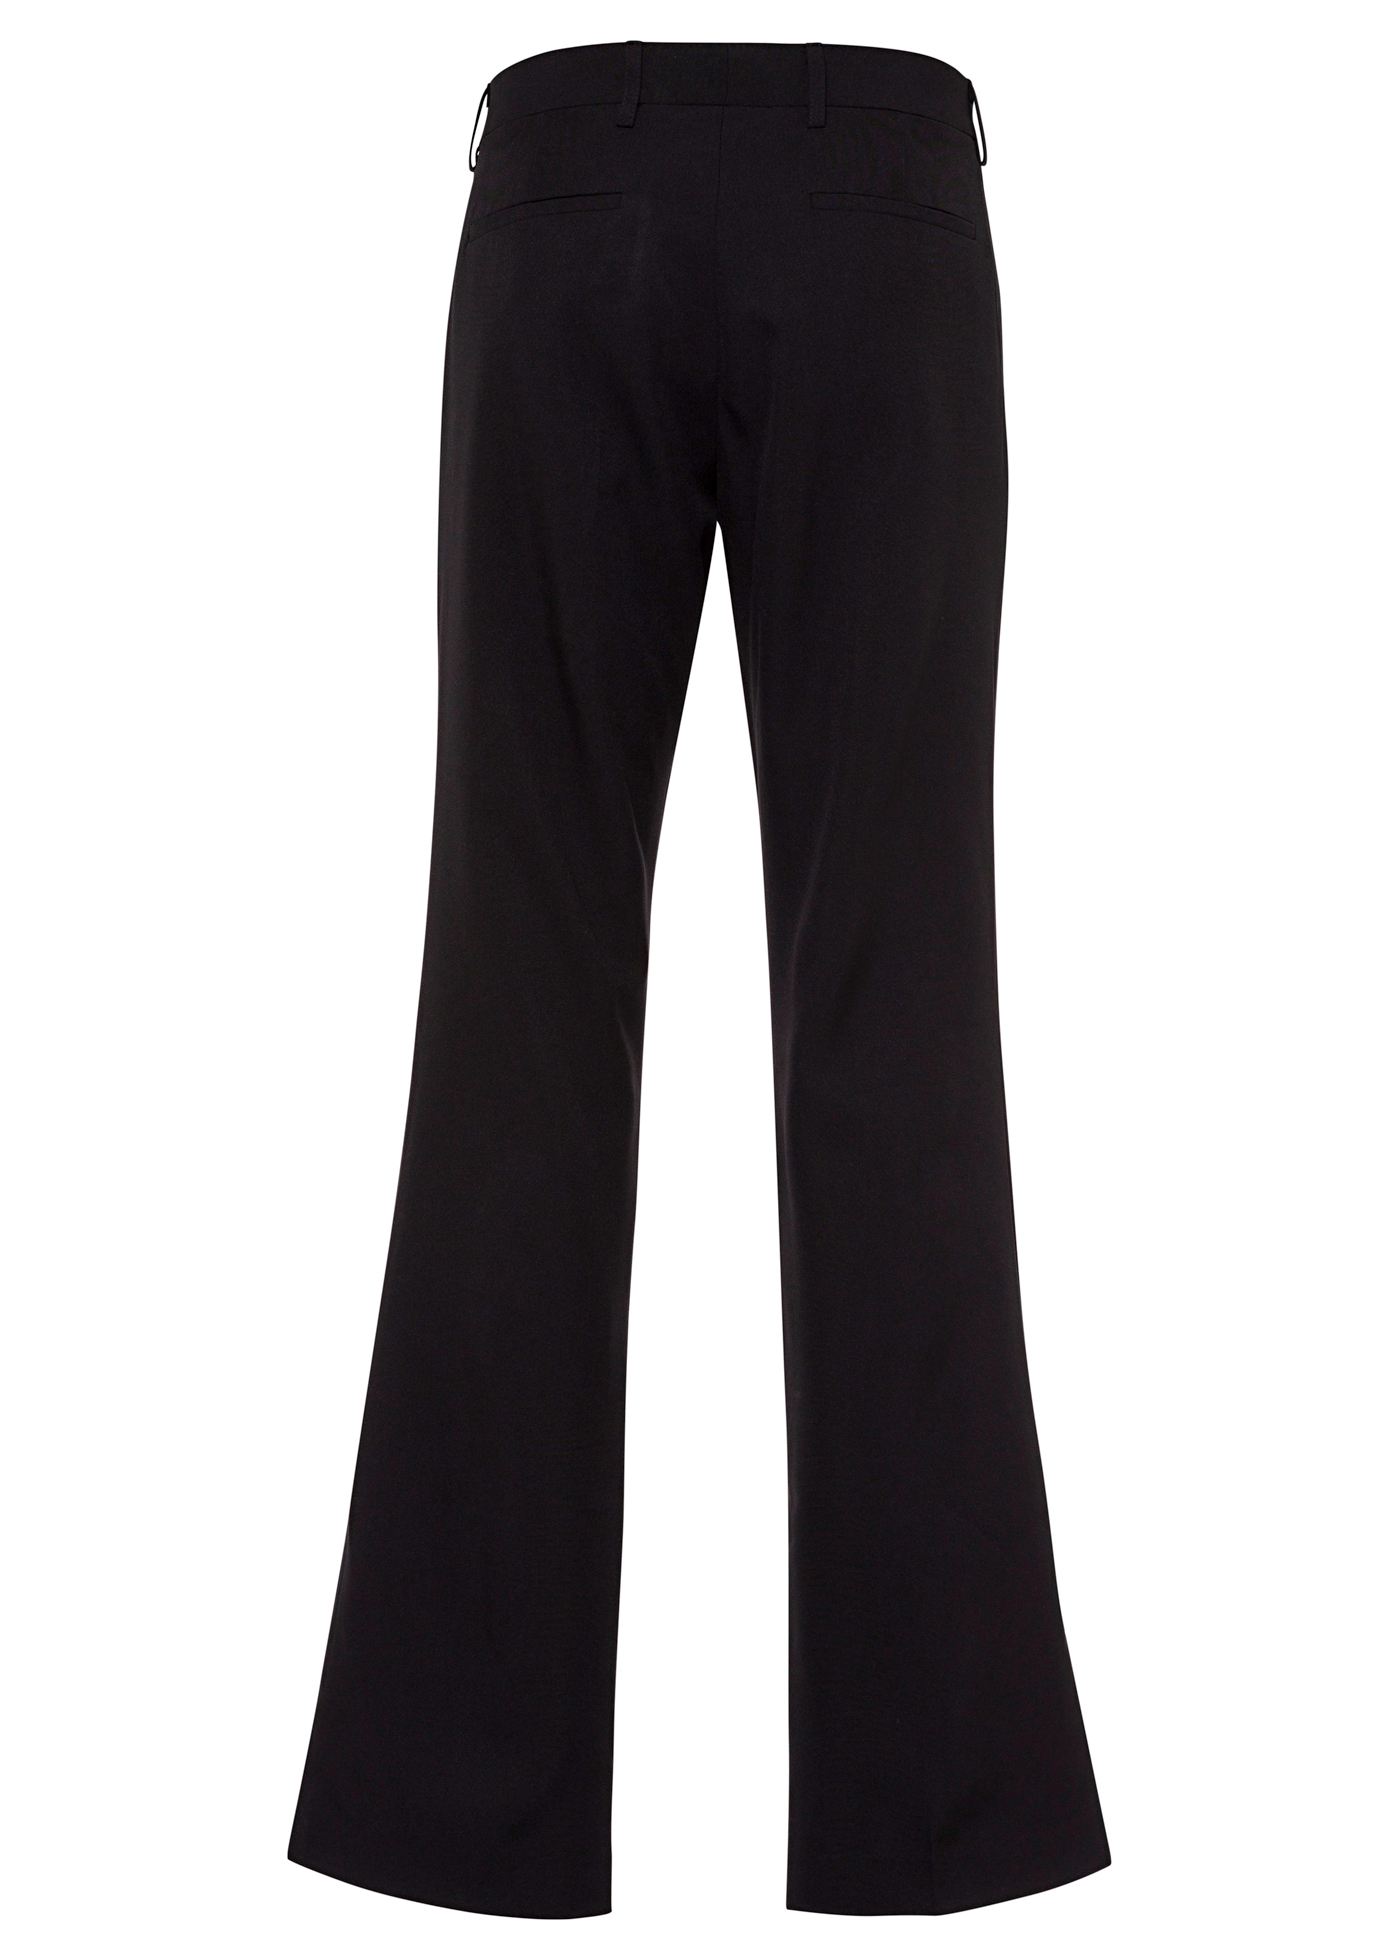 90'S NY BLACK TAILORED TROUSERS image number 1